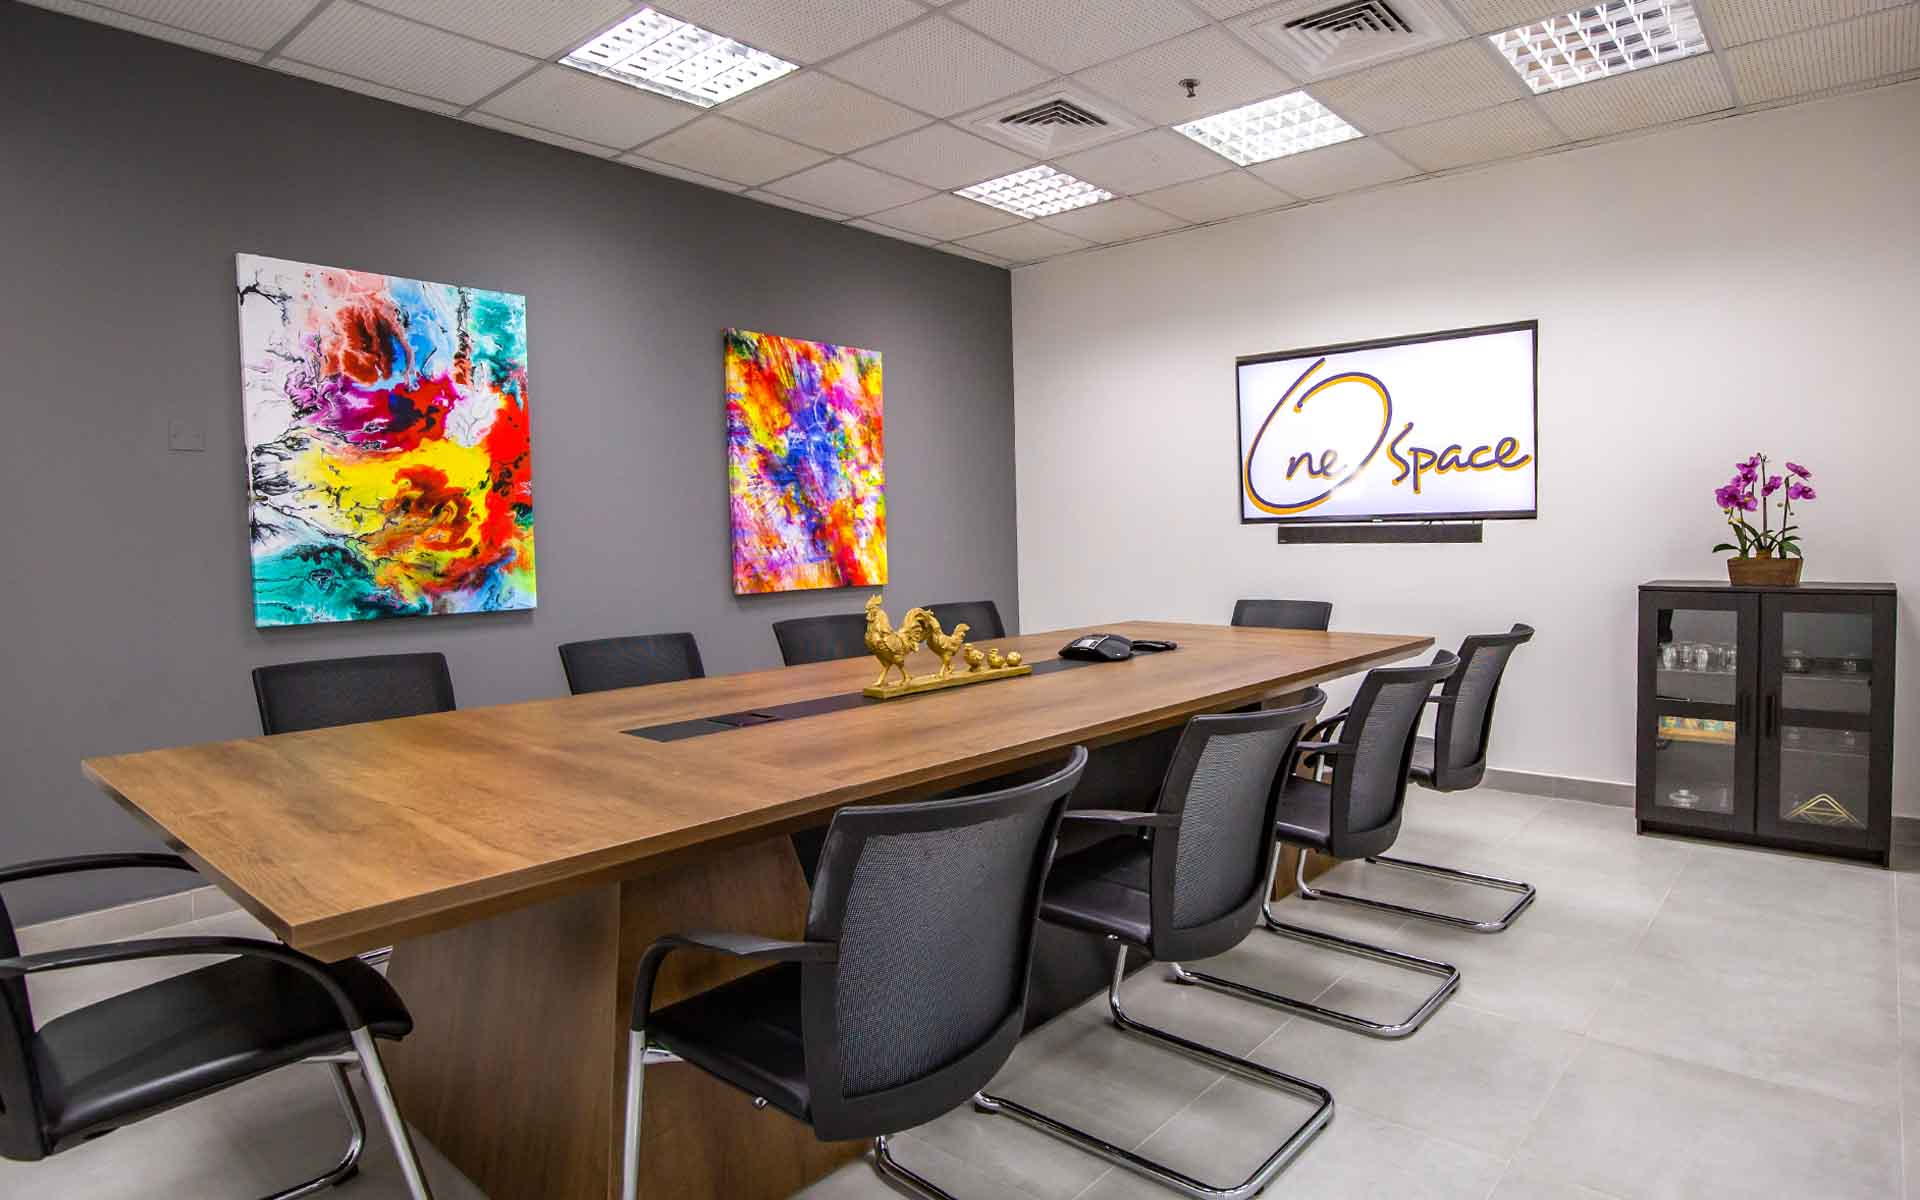 onespace gallery meeting room